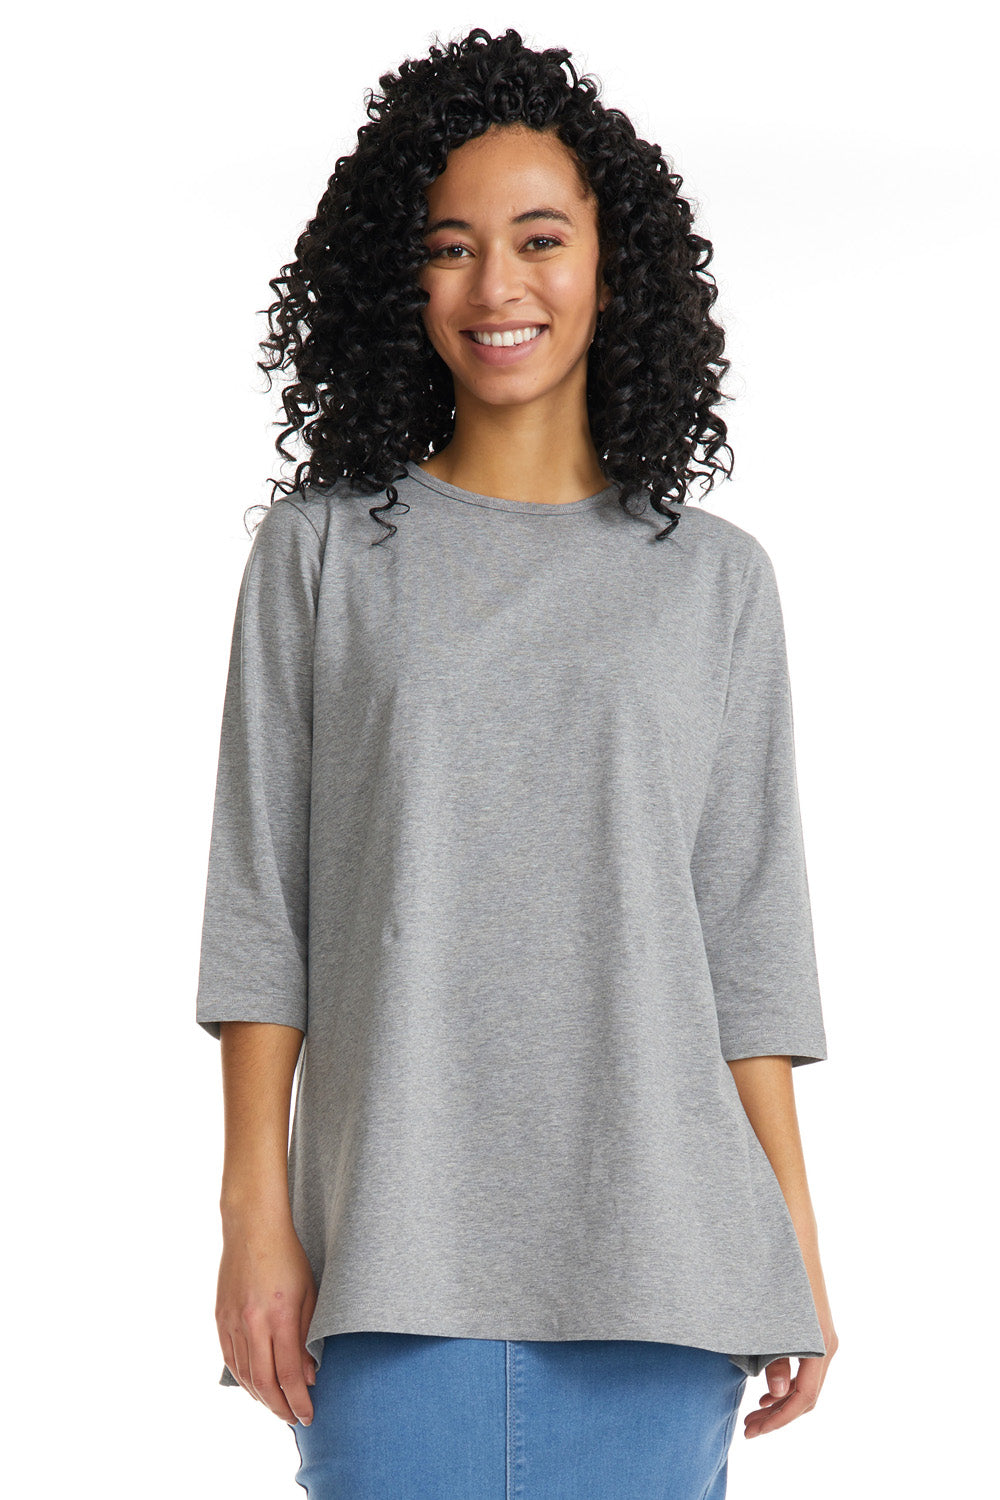 Esteez Loose Tee 2.0 - Women's 3/4 Sleeve - Loose Fitting T-Shirt - GREY